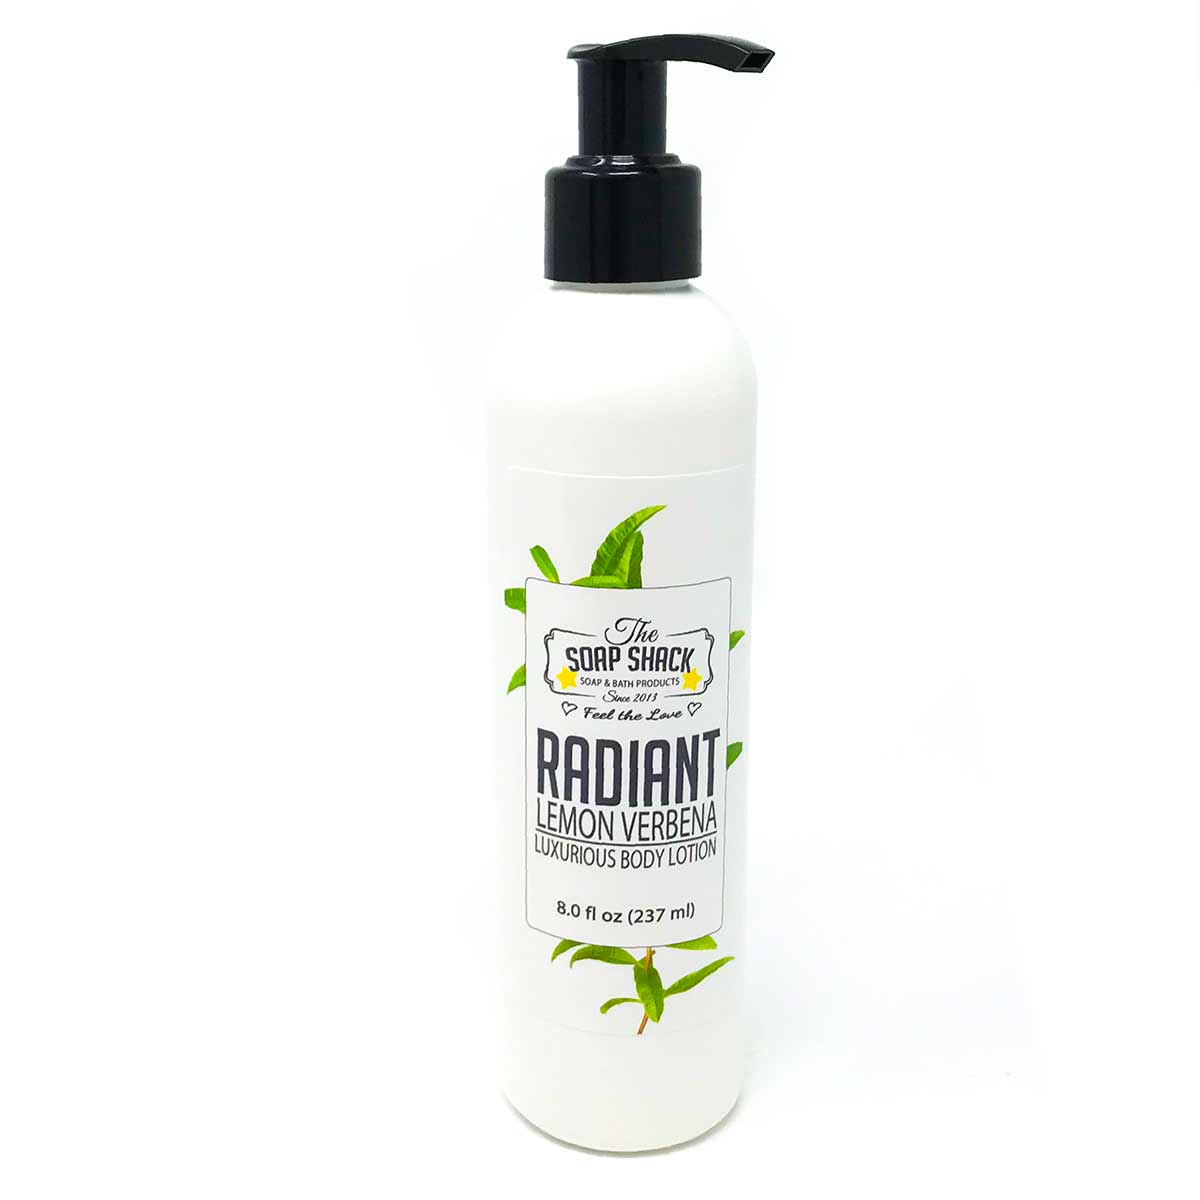 Lotion Lemon Verbena 8 oz pump